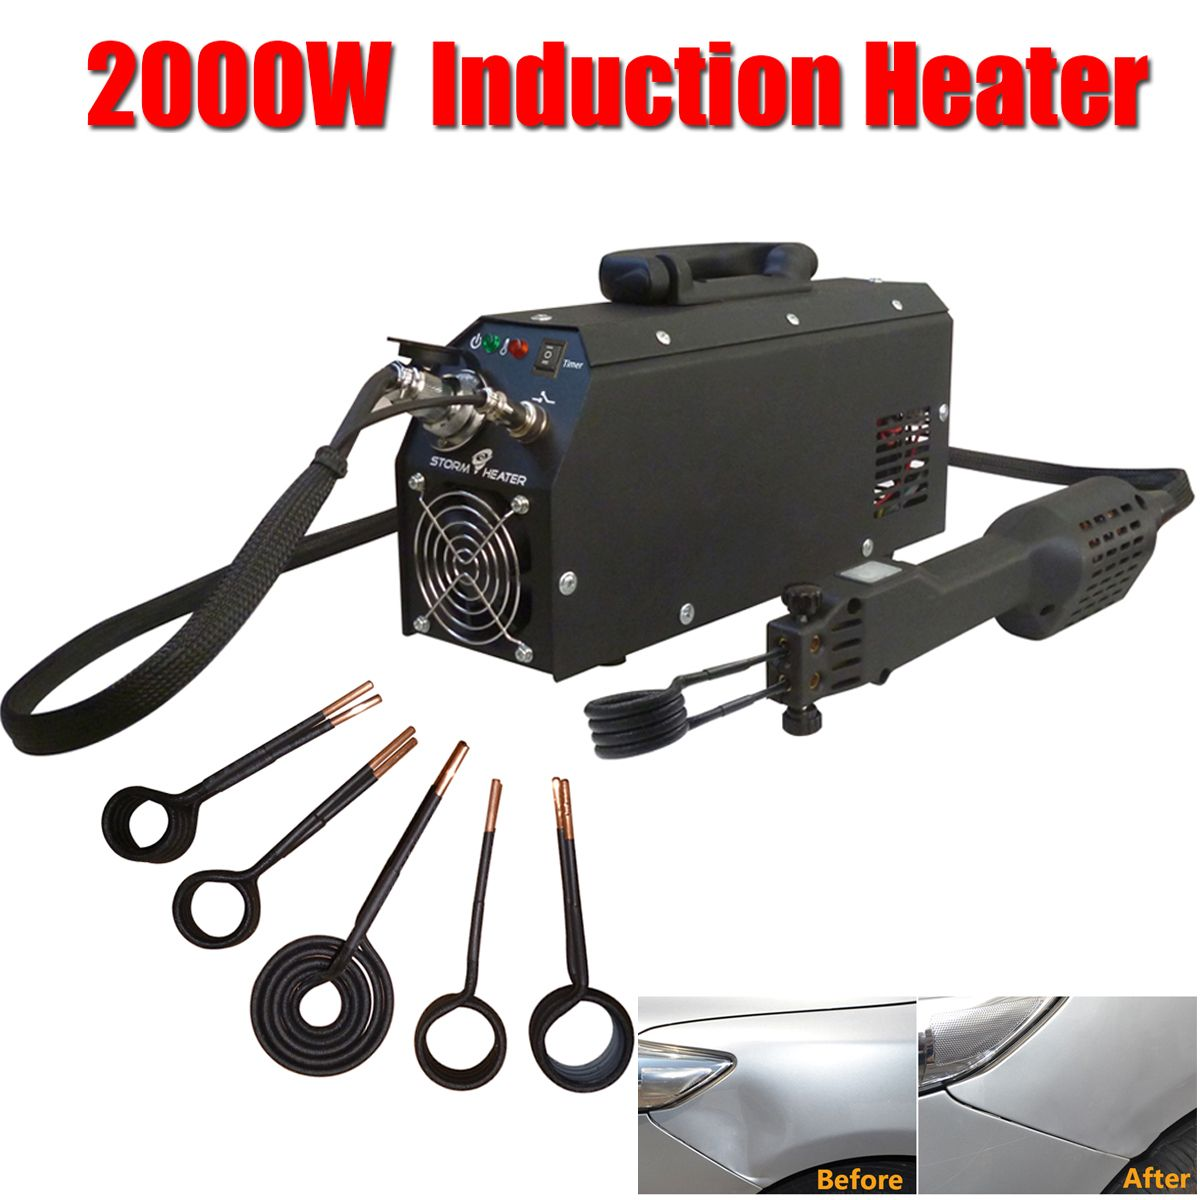 2000W Car Removal of Dents Tool Car Induction Heater Repair Machines Tool Paintless Removing Tool for Car Repair Car Body Repair